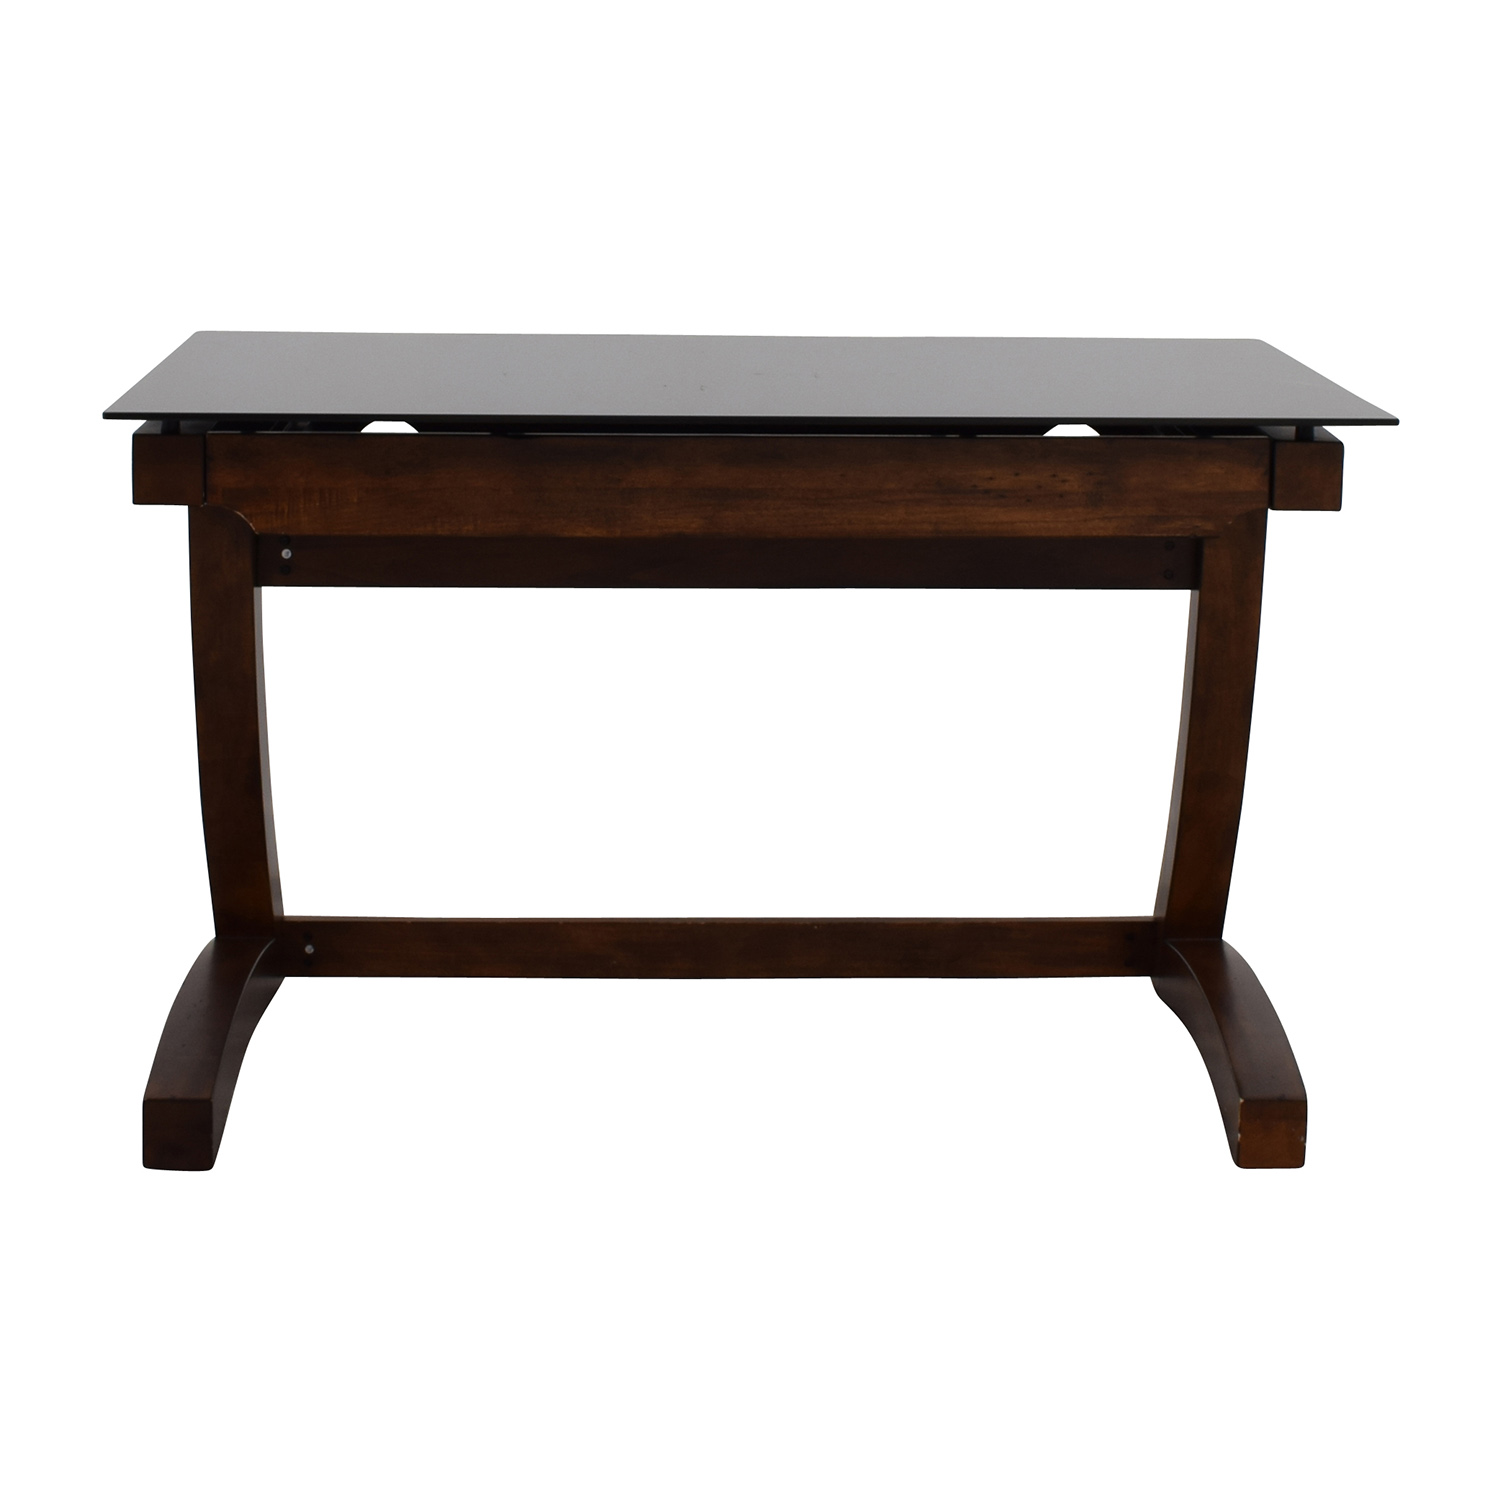 Raymour & Flanigan Computer Table and Chair sale